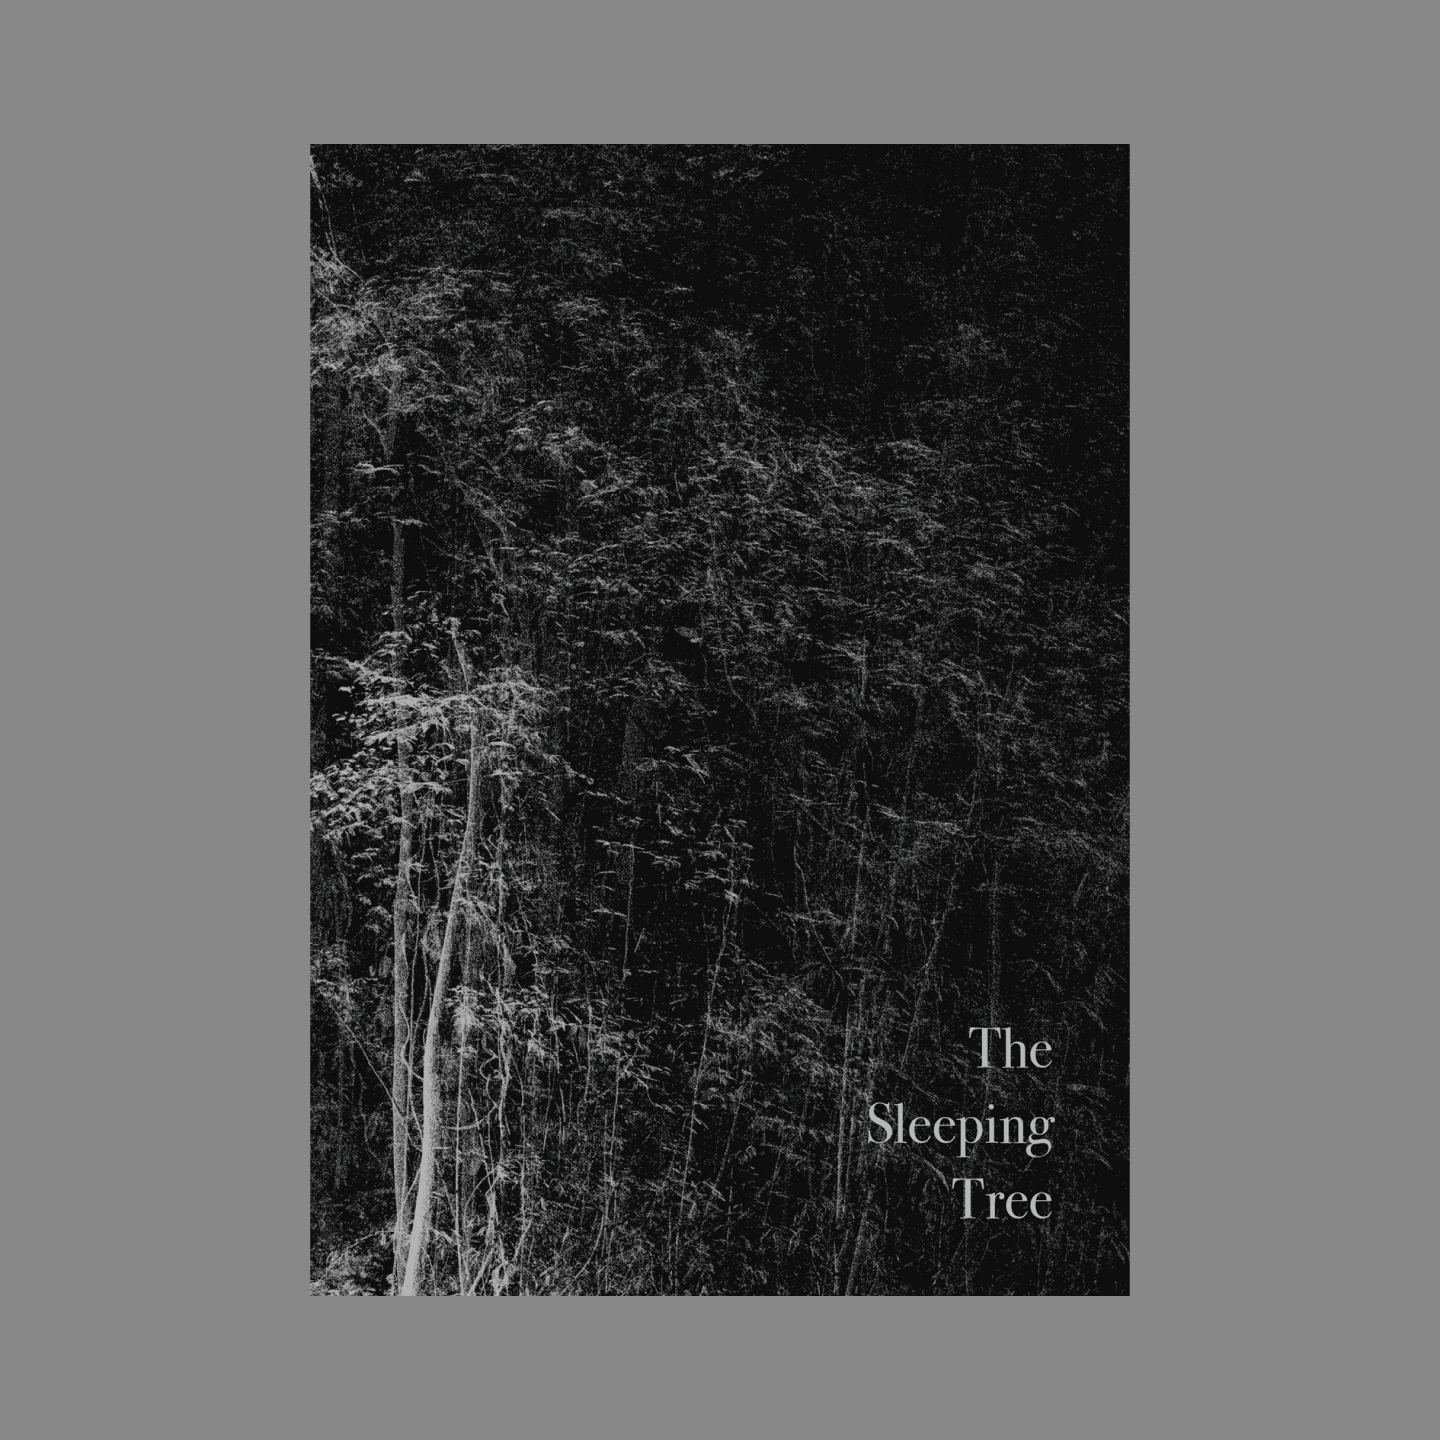 The Sleeping Tree Publication